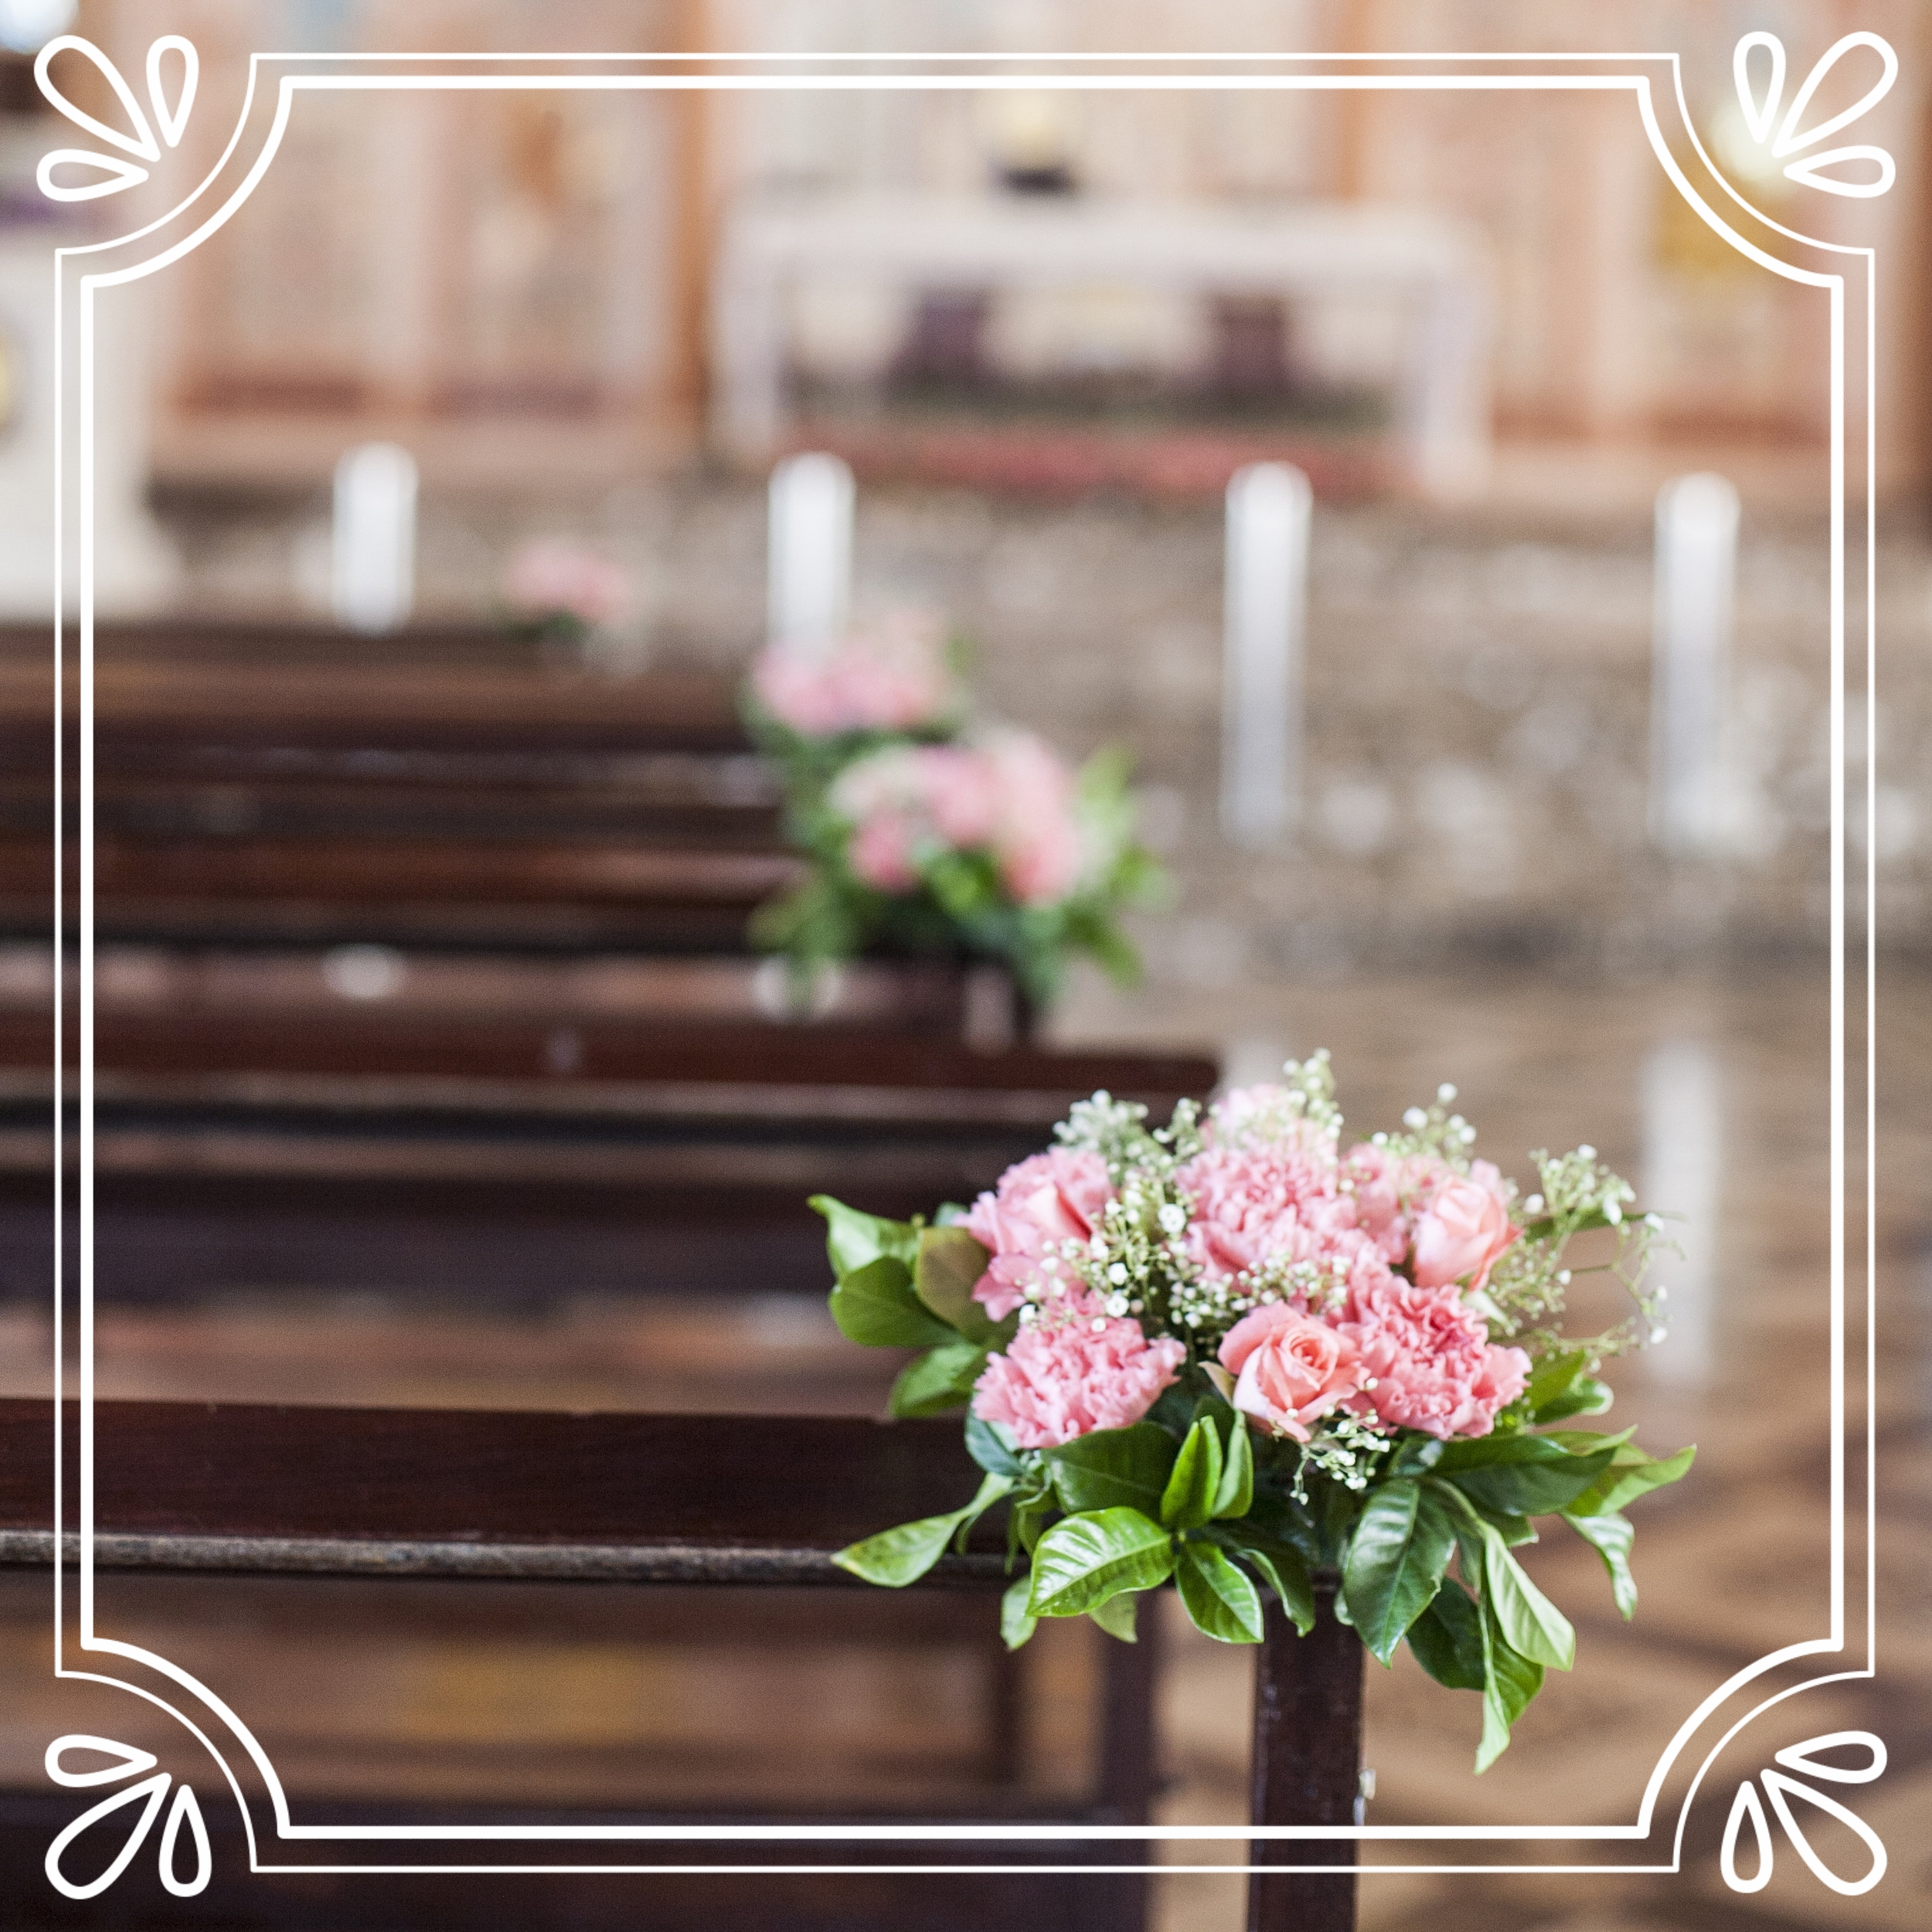 beautiful-flower-wedding-decoration-in-a-church_HwXgmzJd2zl.jpg